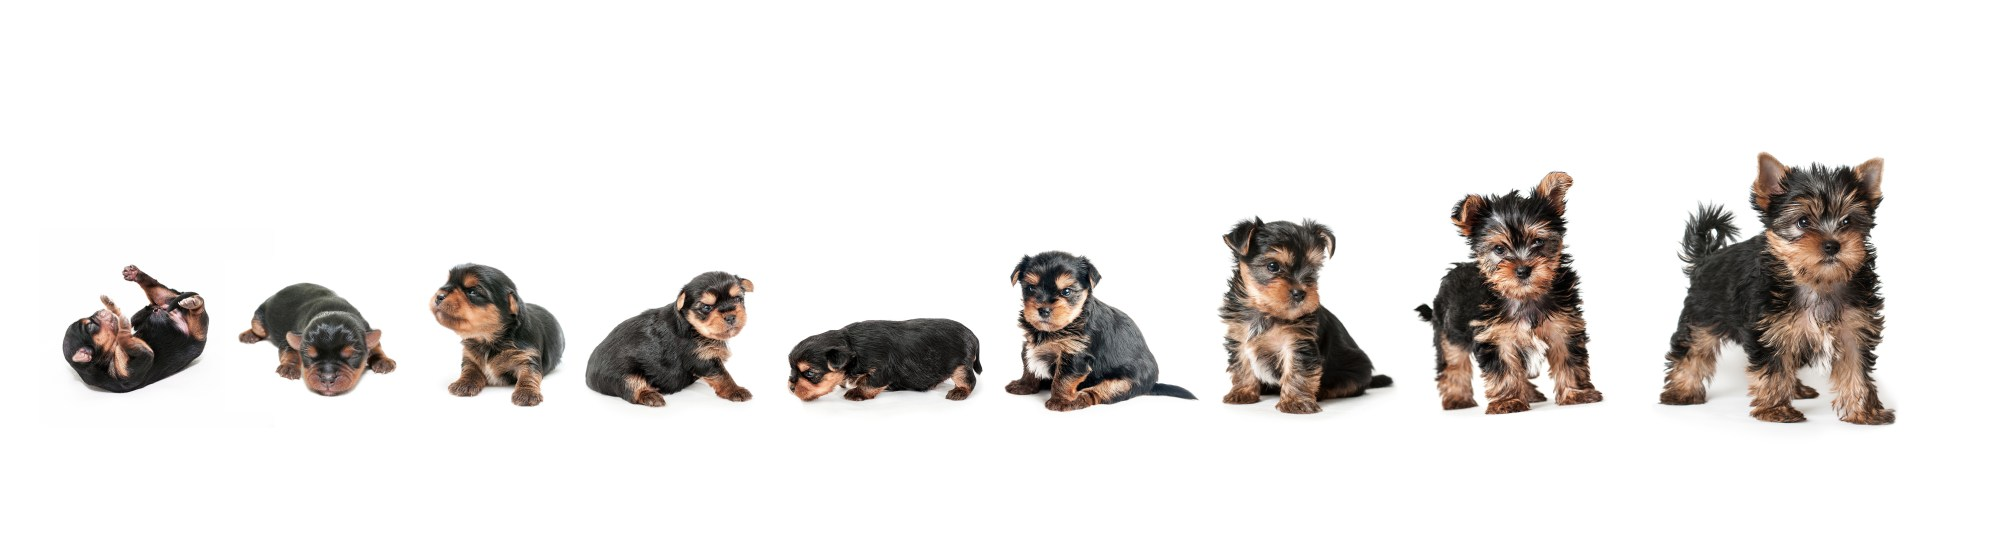 hight resolution of yorkie growth chart and yorkshire terrier development stages